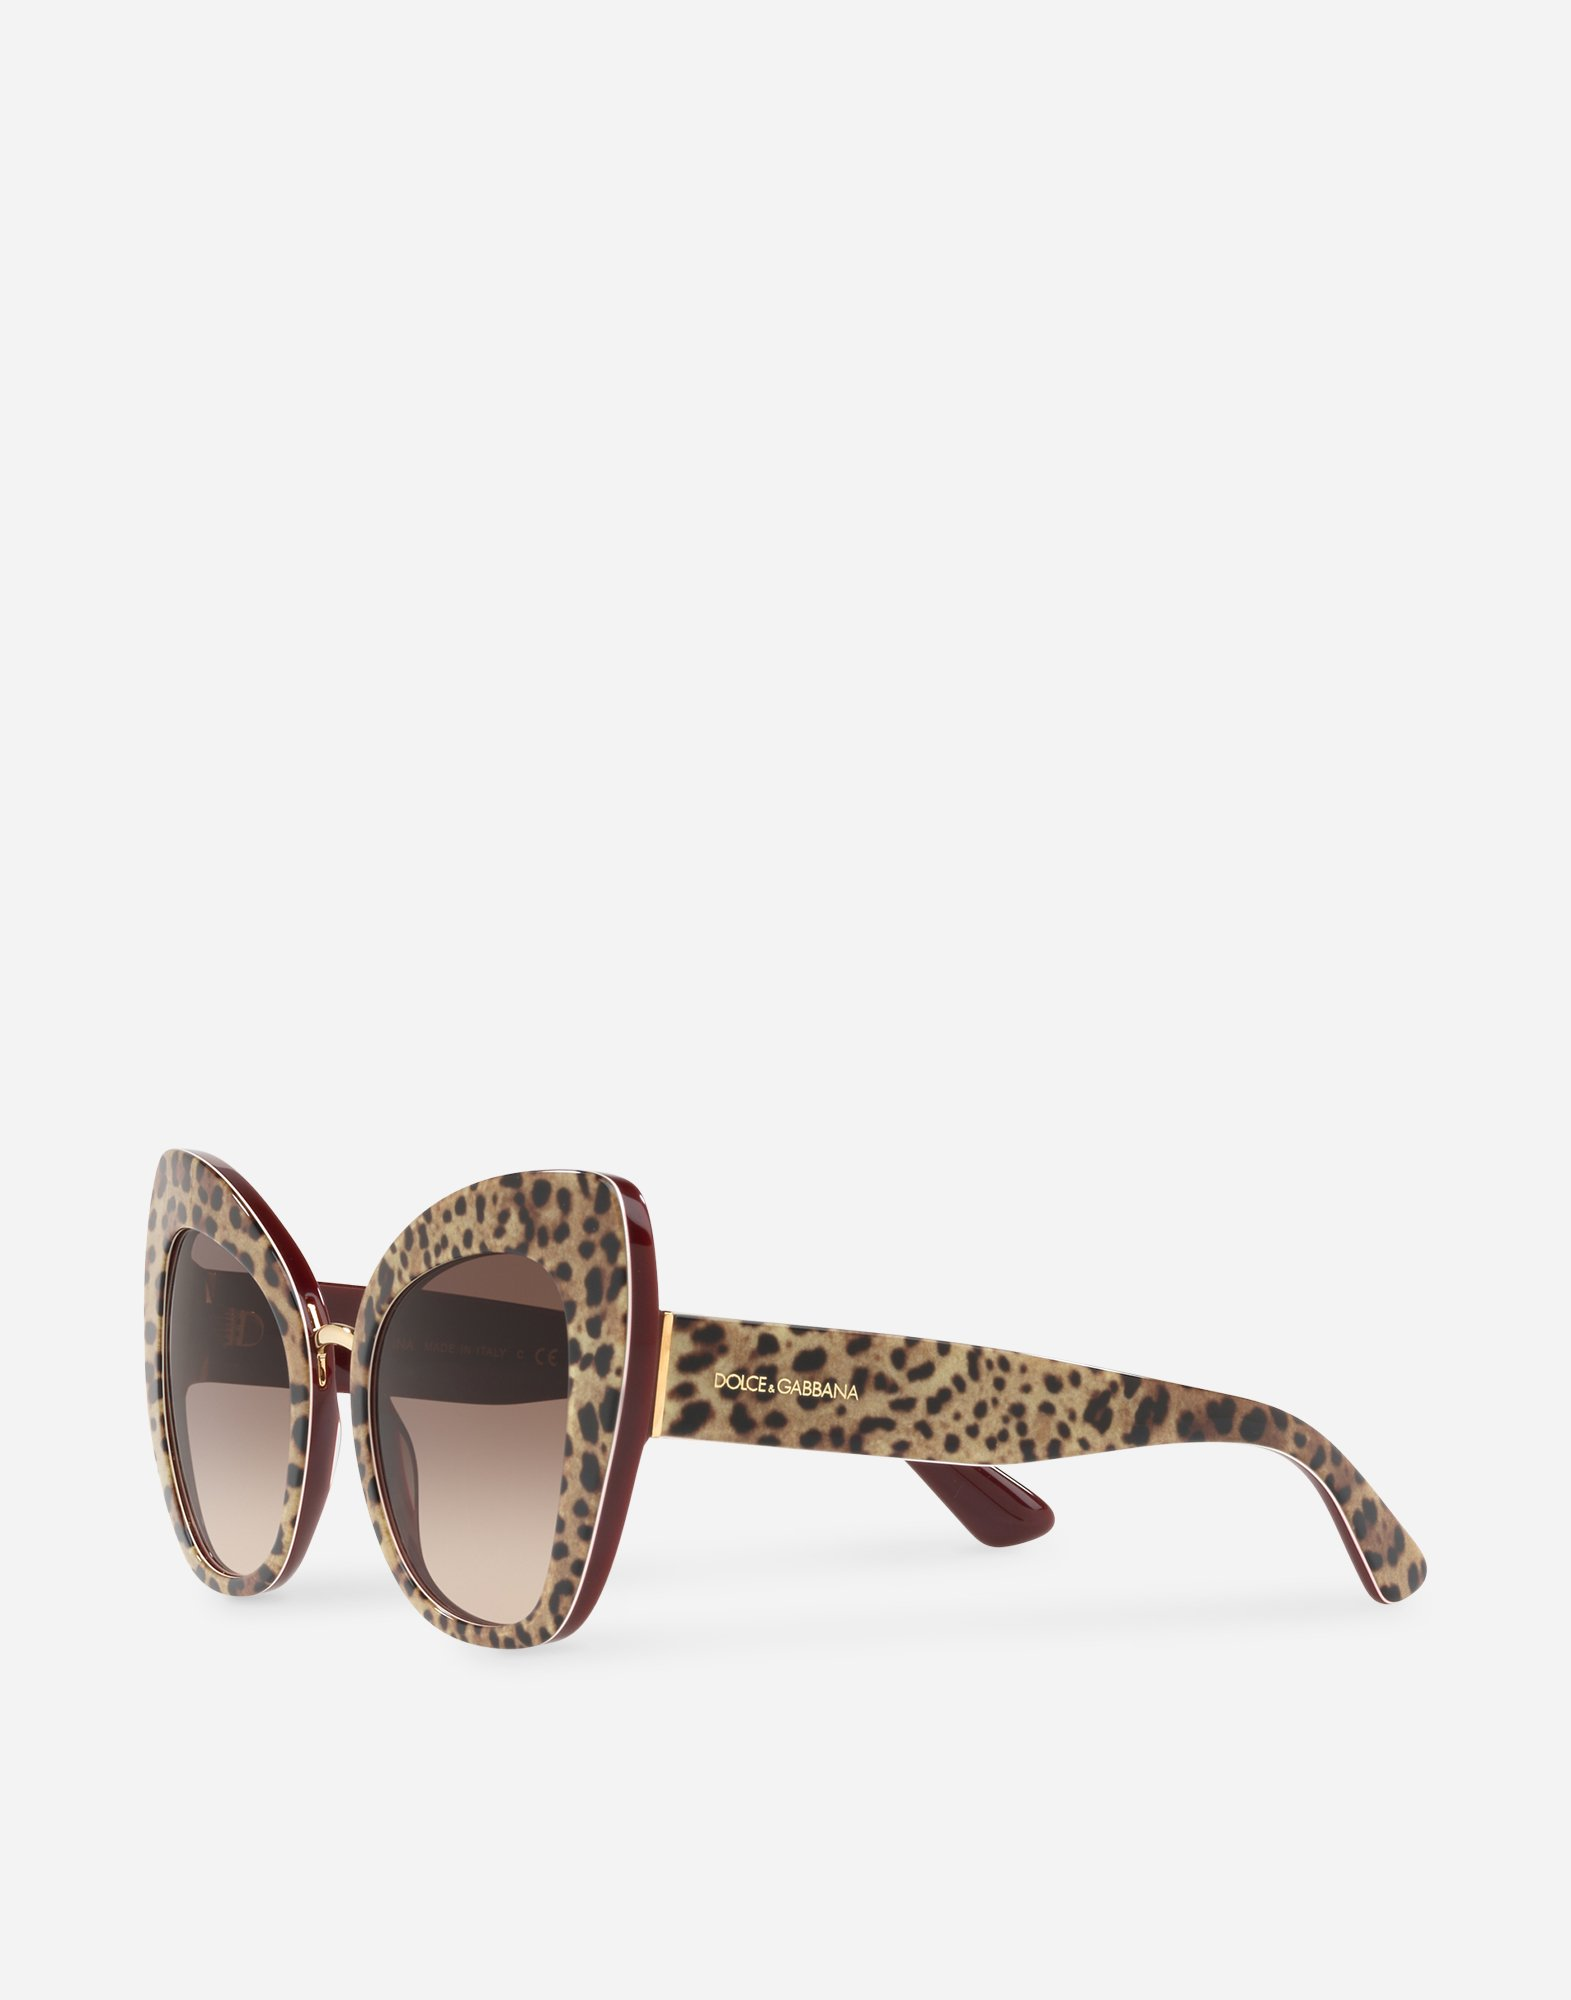 BUTTERFLY SUNGLASSES IN LEOPARD PRINT ACETATE